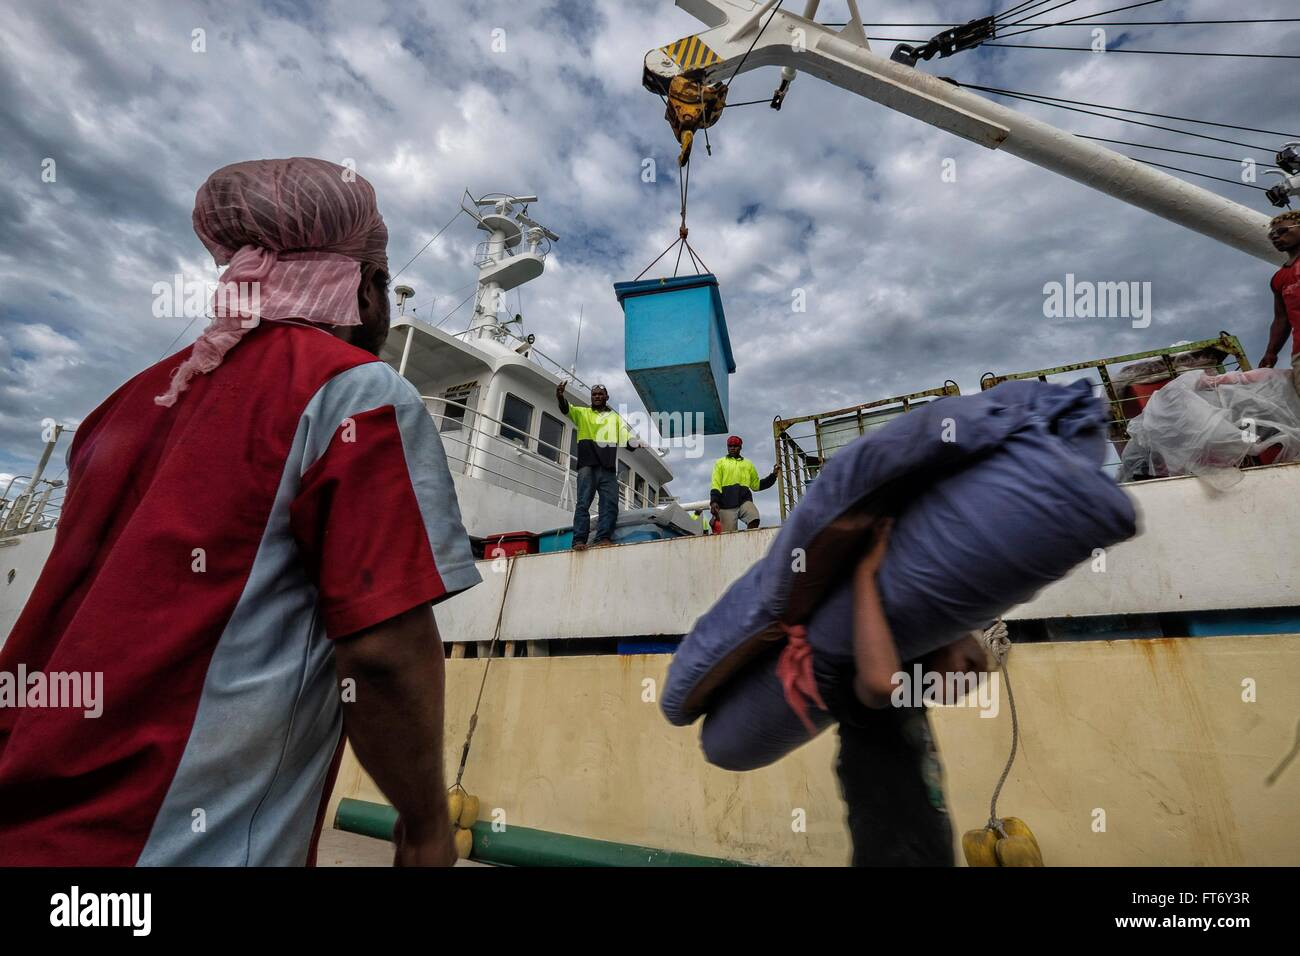 A dock worker unloads cargo from a ship at the port July 2, 2015 in Honiara, Solomon Islands. - Stock Image